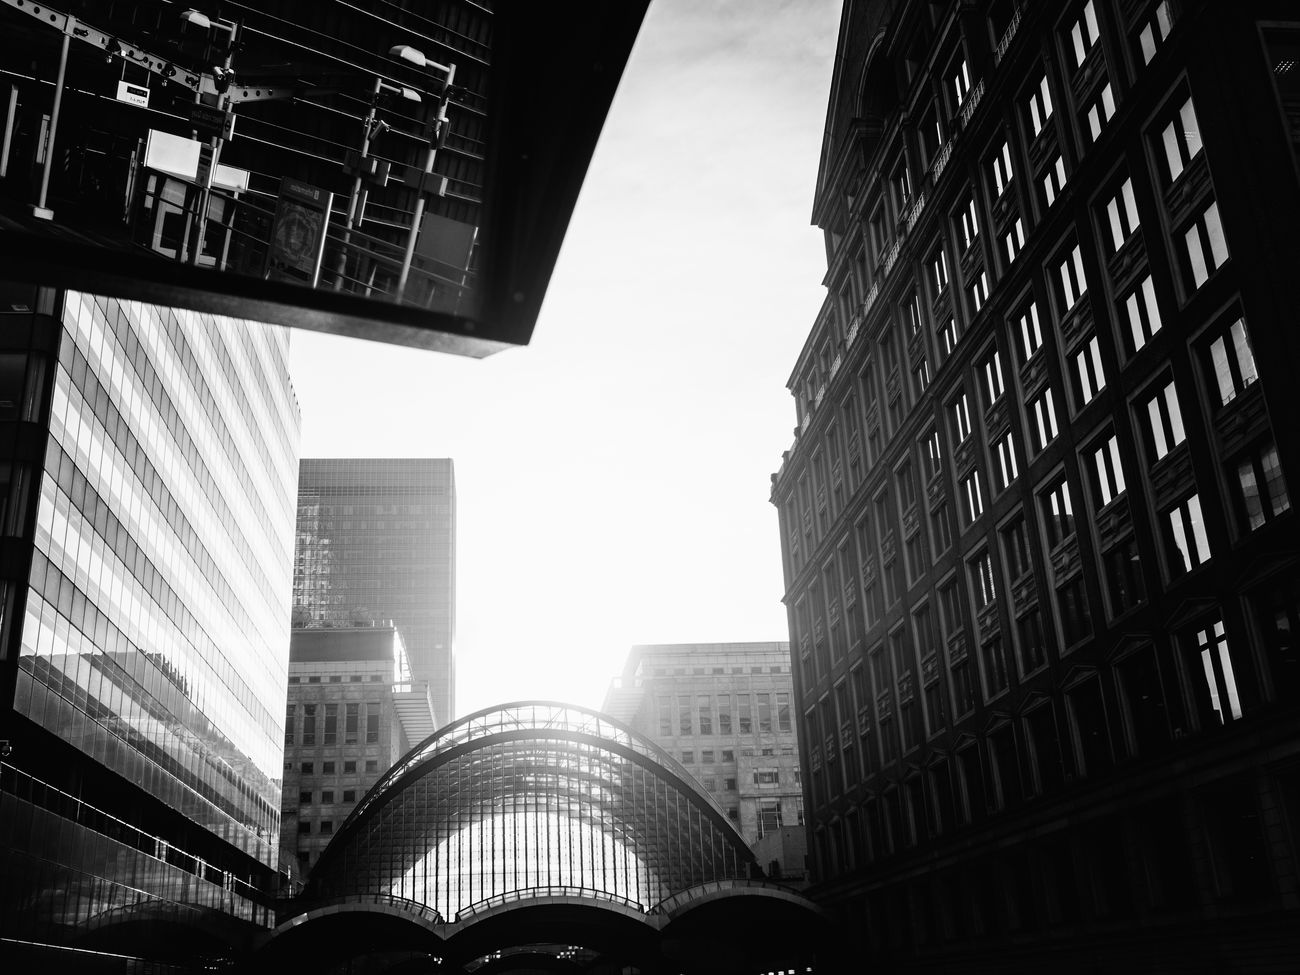 Canary Wharf. City Skyscraper Architecture Built Structure Low Angle View City Life Modern Sky Cityscape No People Cıty London Black And White Photography Blackandwhite Olympus Pen-f Light And Shadow Shadow Light Dark Black And White Prime Lens Rawstreets Olympus Pen F Maxgor Maxgor.com The City Light